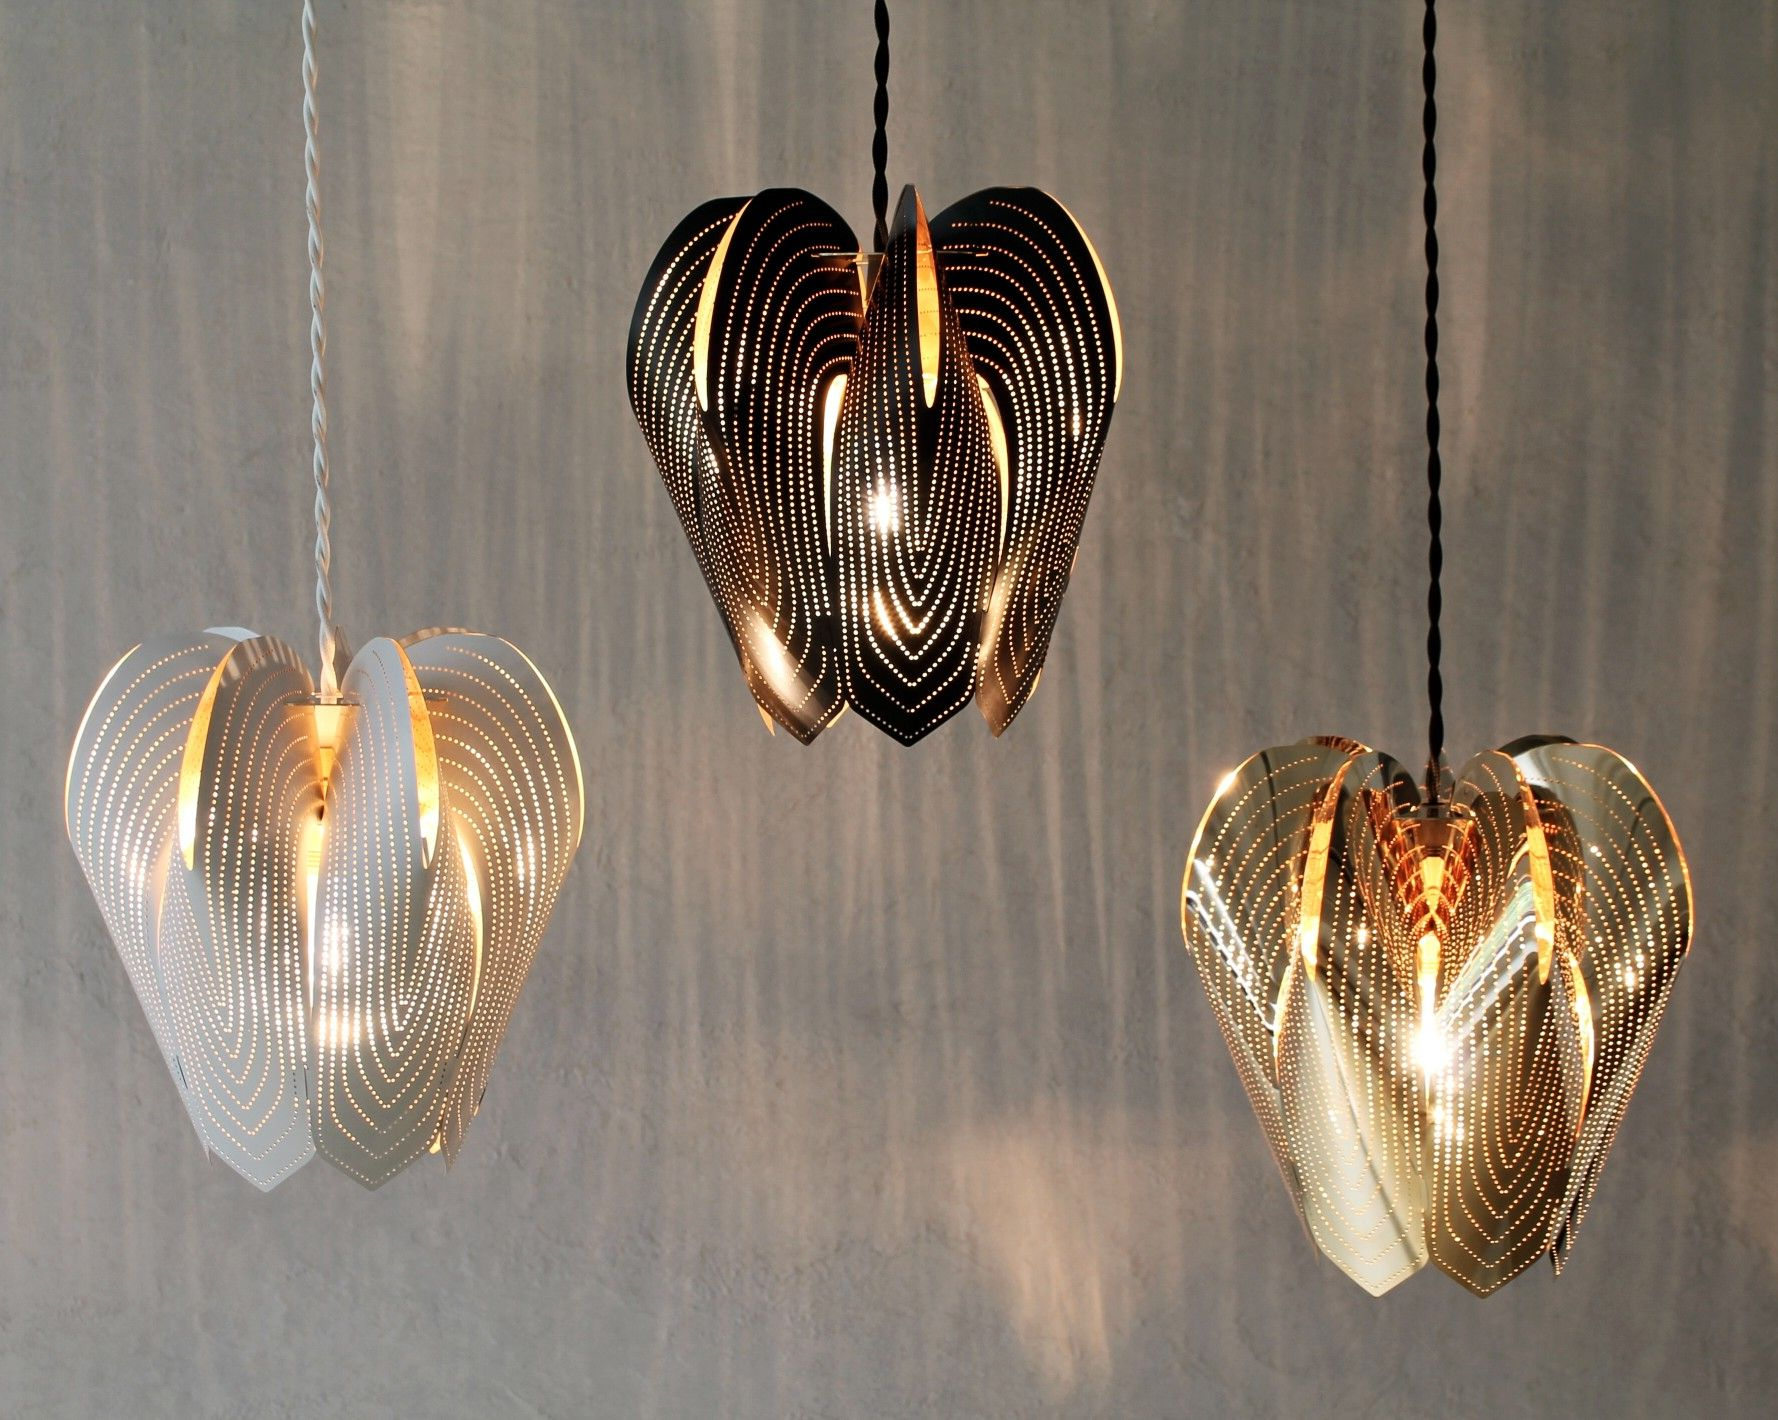 Pin By Red Square Ksa On Fam Cool Designs Decorative Items Pendant Light